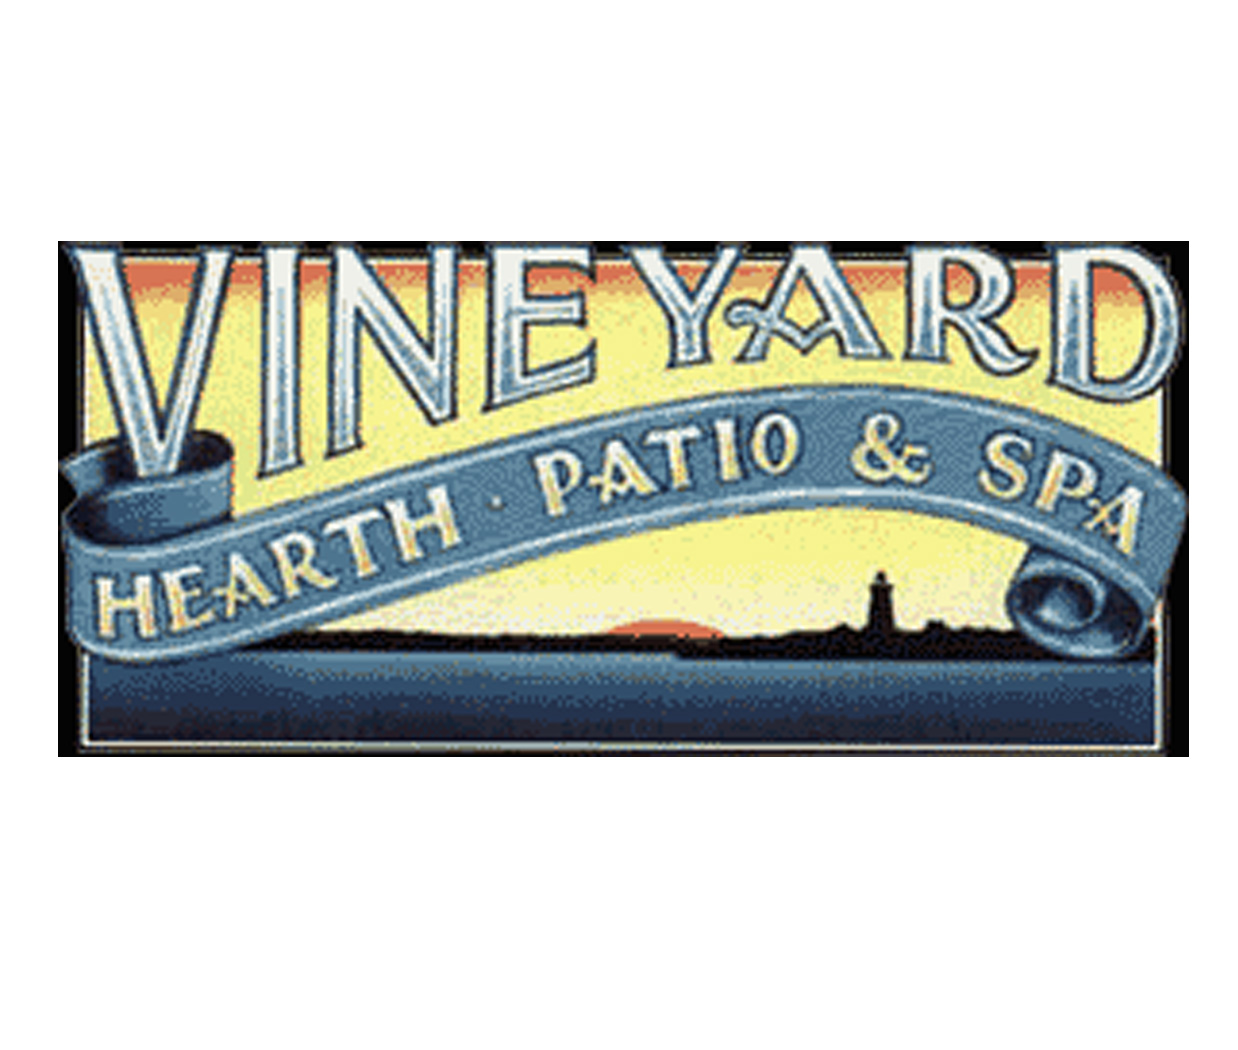 Vineyard Hearth Patio and Spa